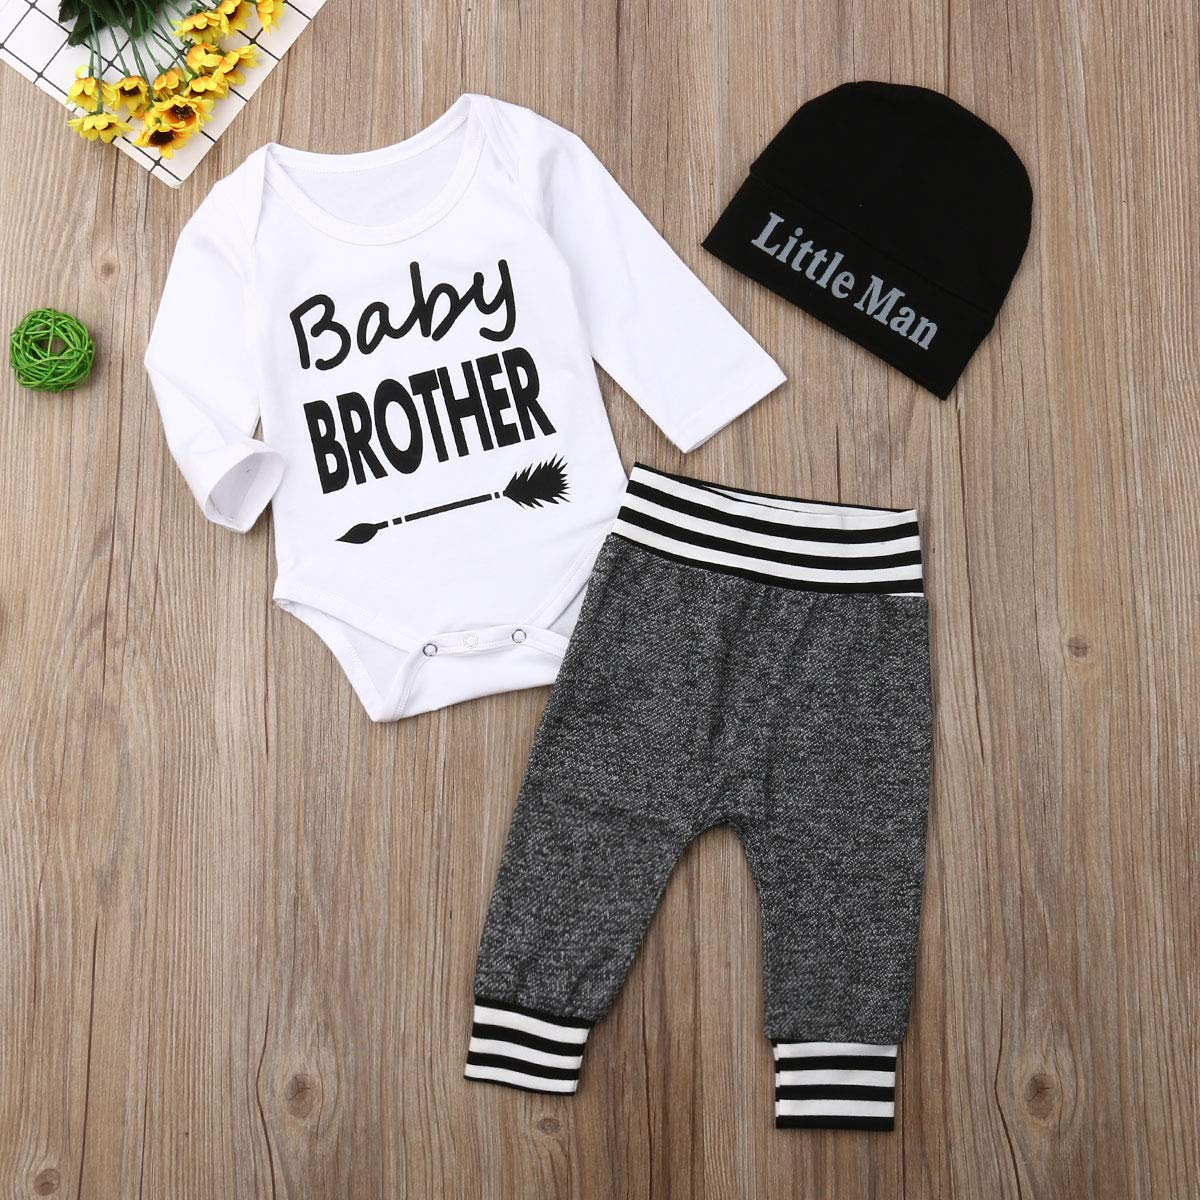 Grace business Toddler Baby Boys Chic Fall 3 Pcs Long Sleeve Letter Printed Romper Top+Grey Stripe Long Pants+Hat 0-18M